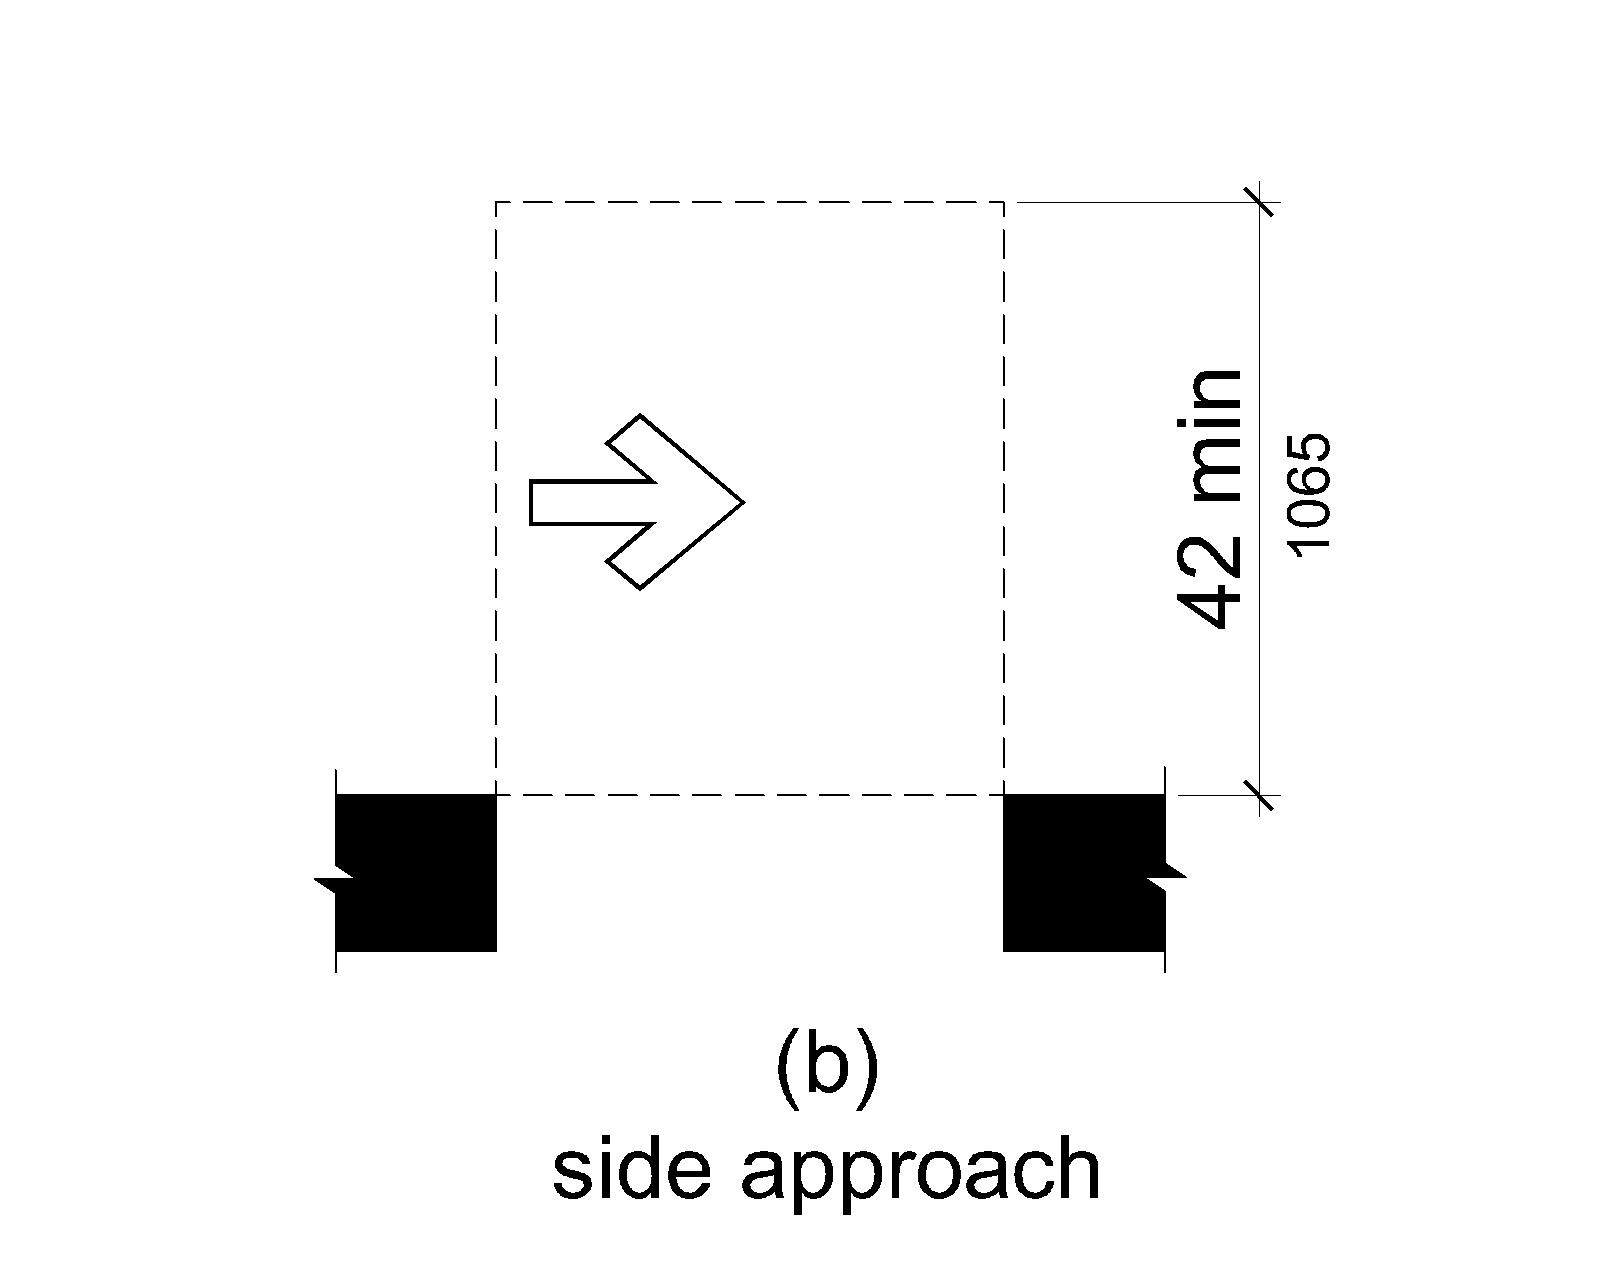 Figure (b) shows a doorway without a door. For a side approach, maneuvering clearance is as wide as the doorway and 42 inches (1065 mm) minimum perpendicular to the doorway.